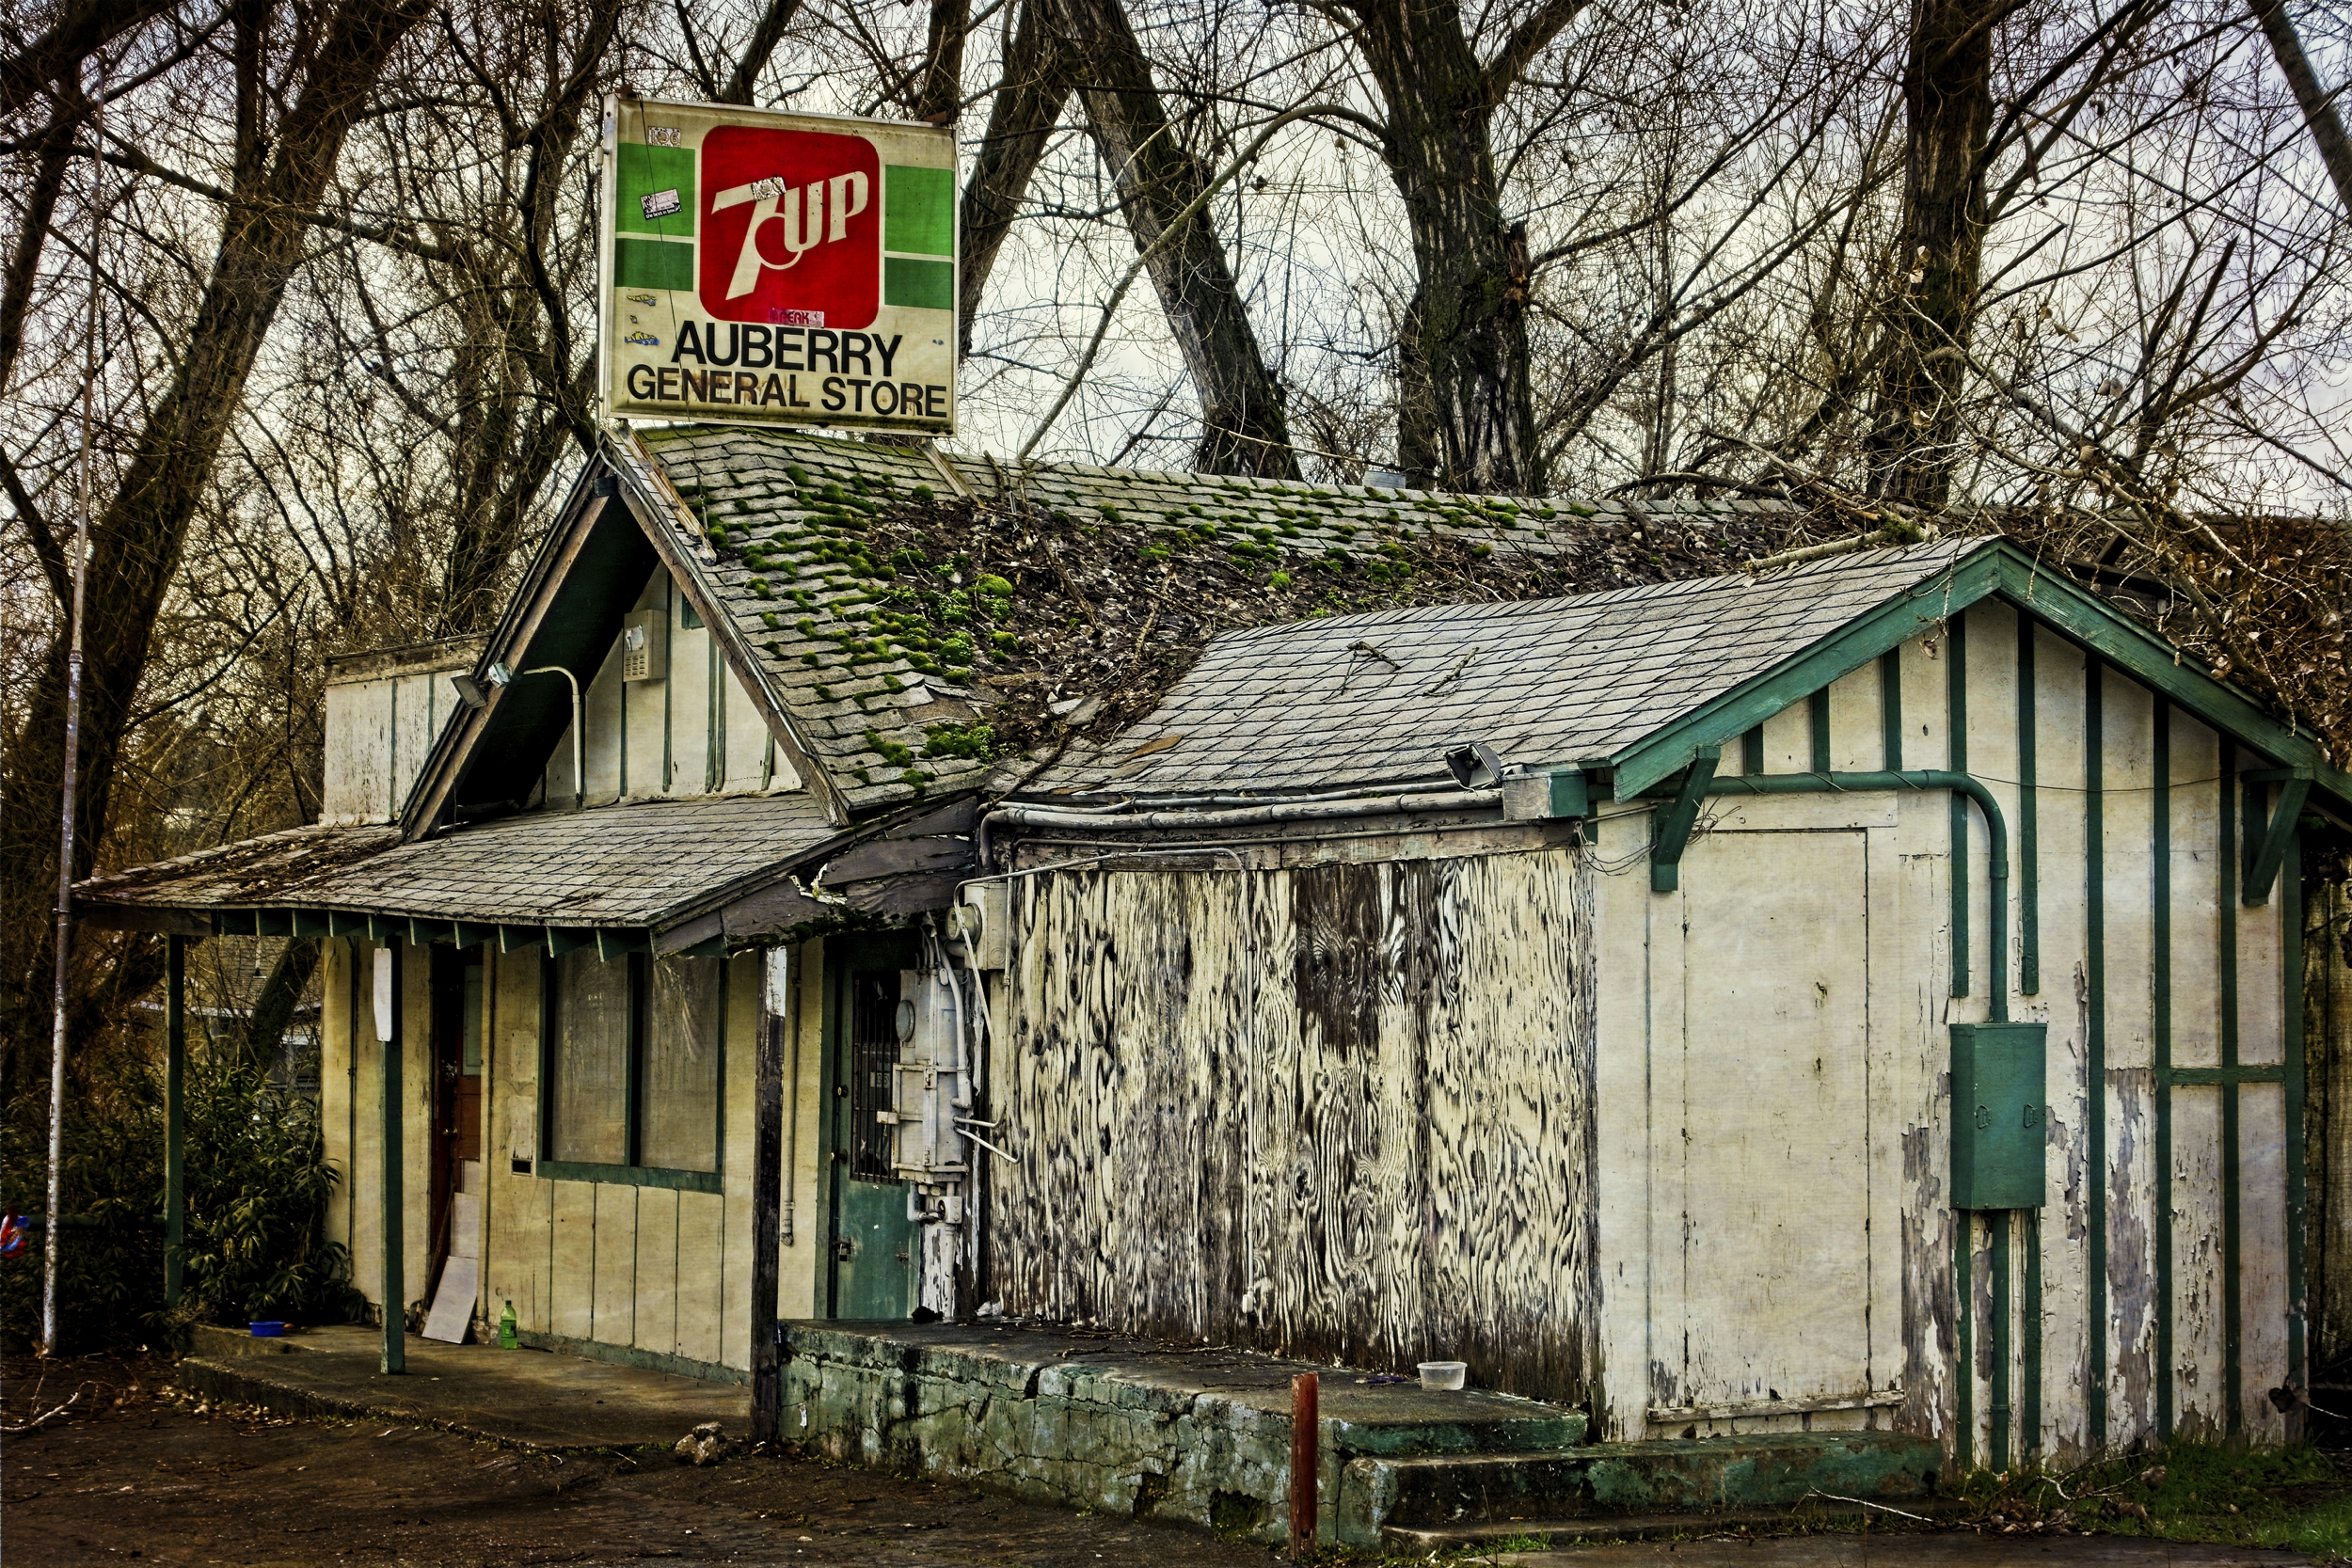 Auberry General Store - Auberry, California U.S.A. - February 9, 2019